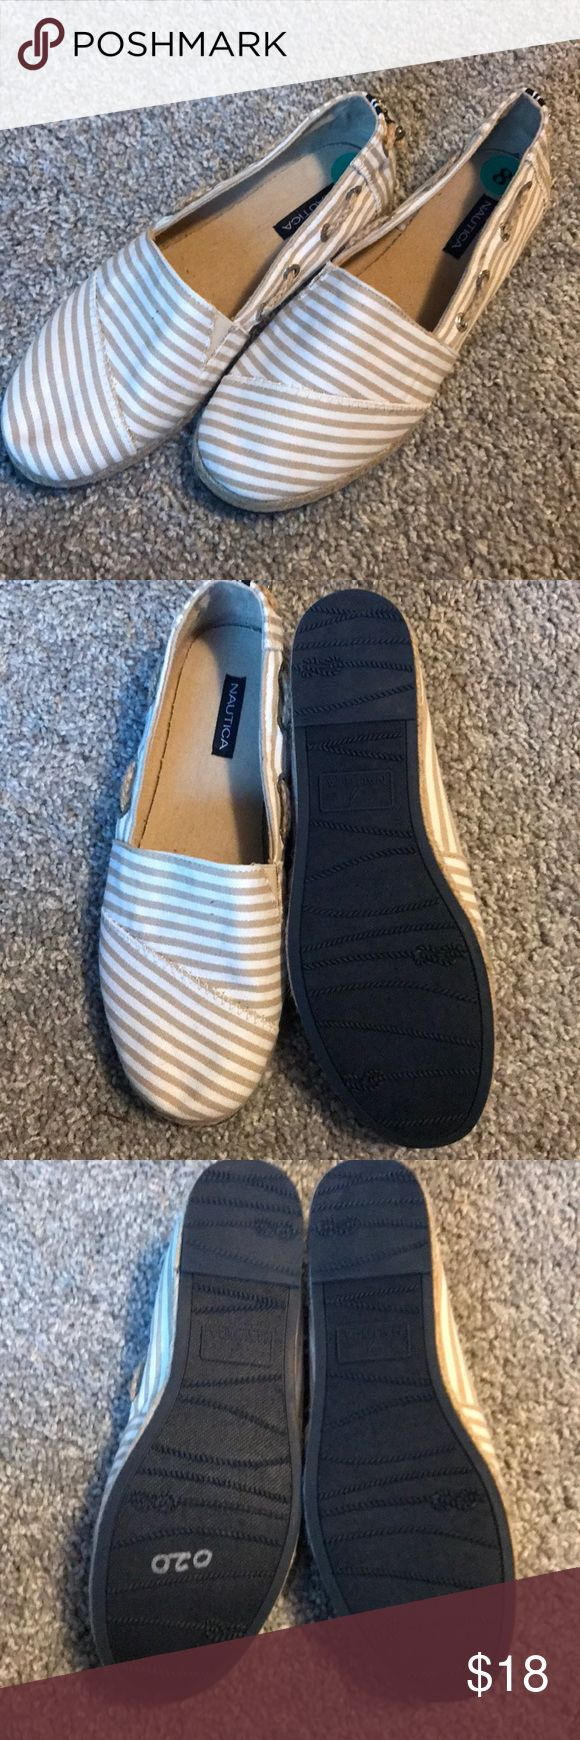 Nautical Espadrilles NWOT Brand new Nautical Espadrilles. Adorable with jeans or shorts. Never worn. Reasonable offers welcome. Non- smoking and pet free home. Discounts on bundles! Nautica Shoes Espadrilles